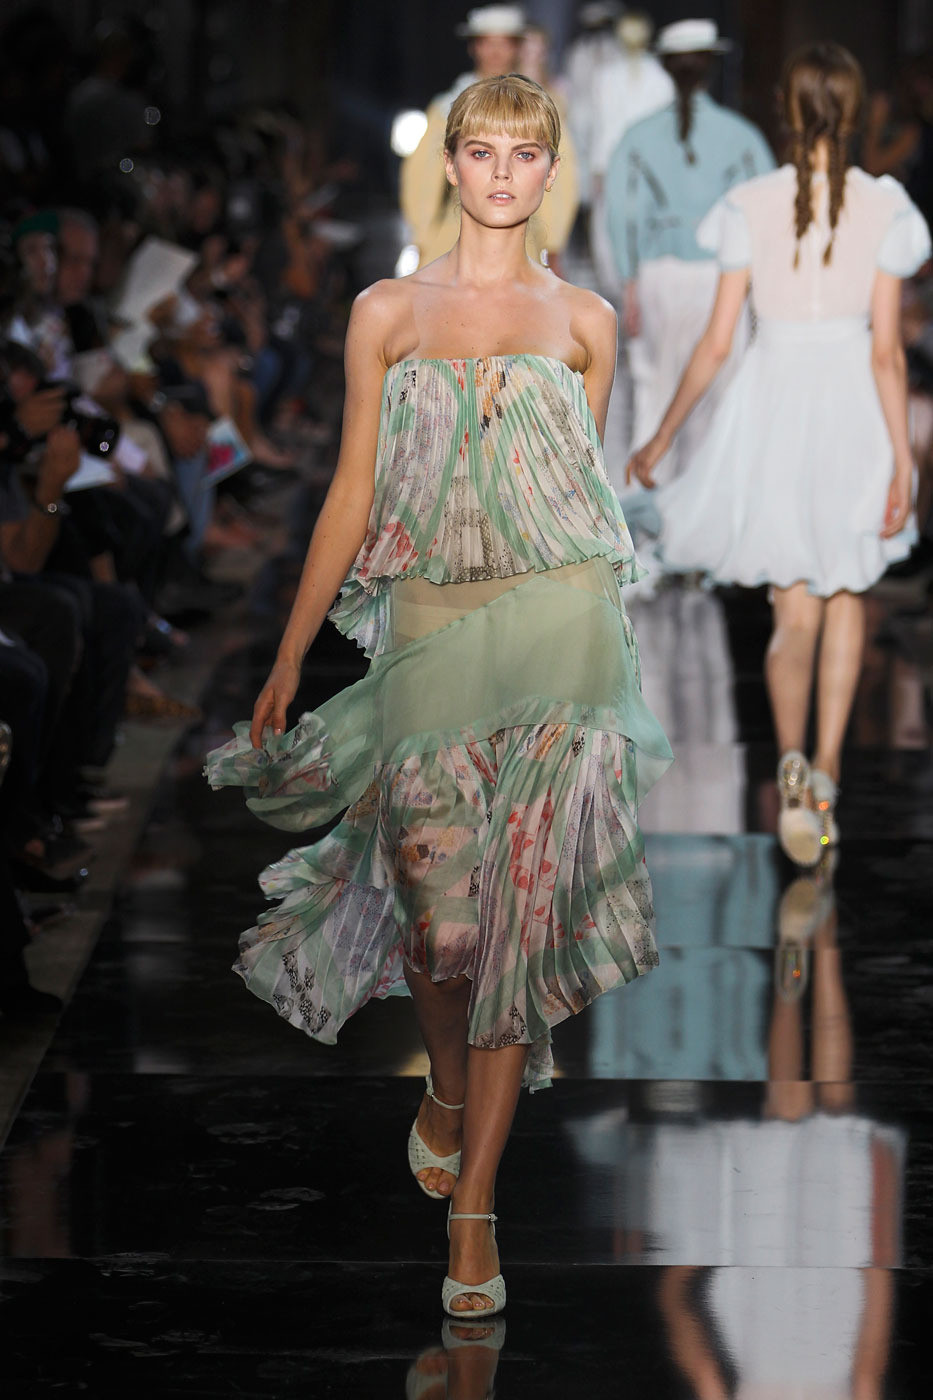 John Galliano Spring 20120101 n 3 PD 5 Kx